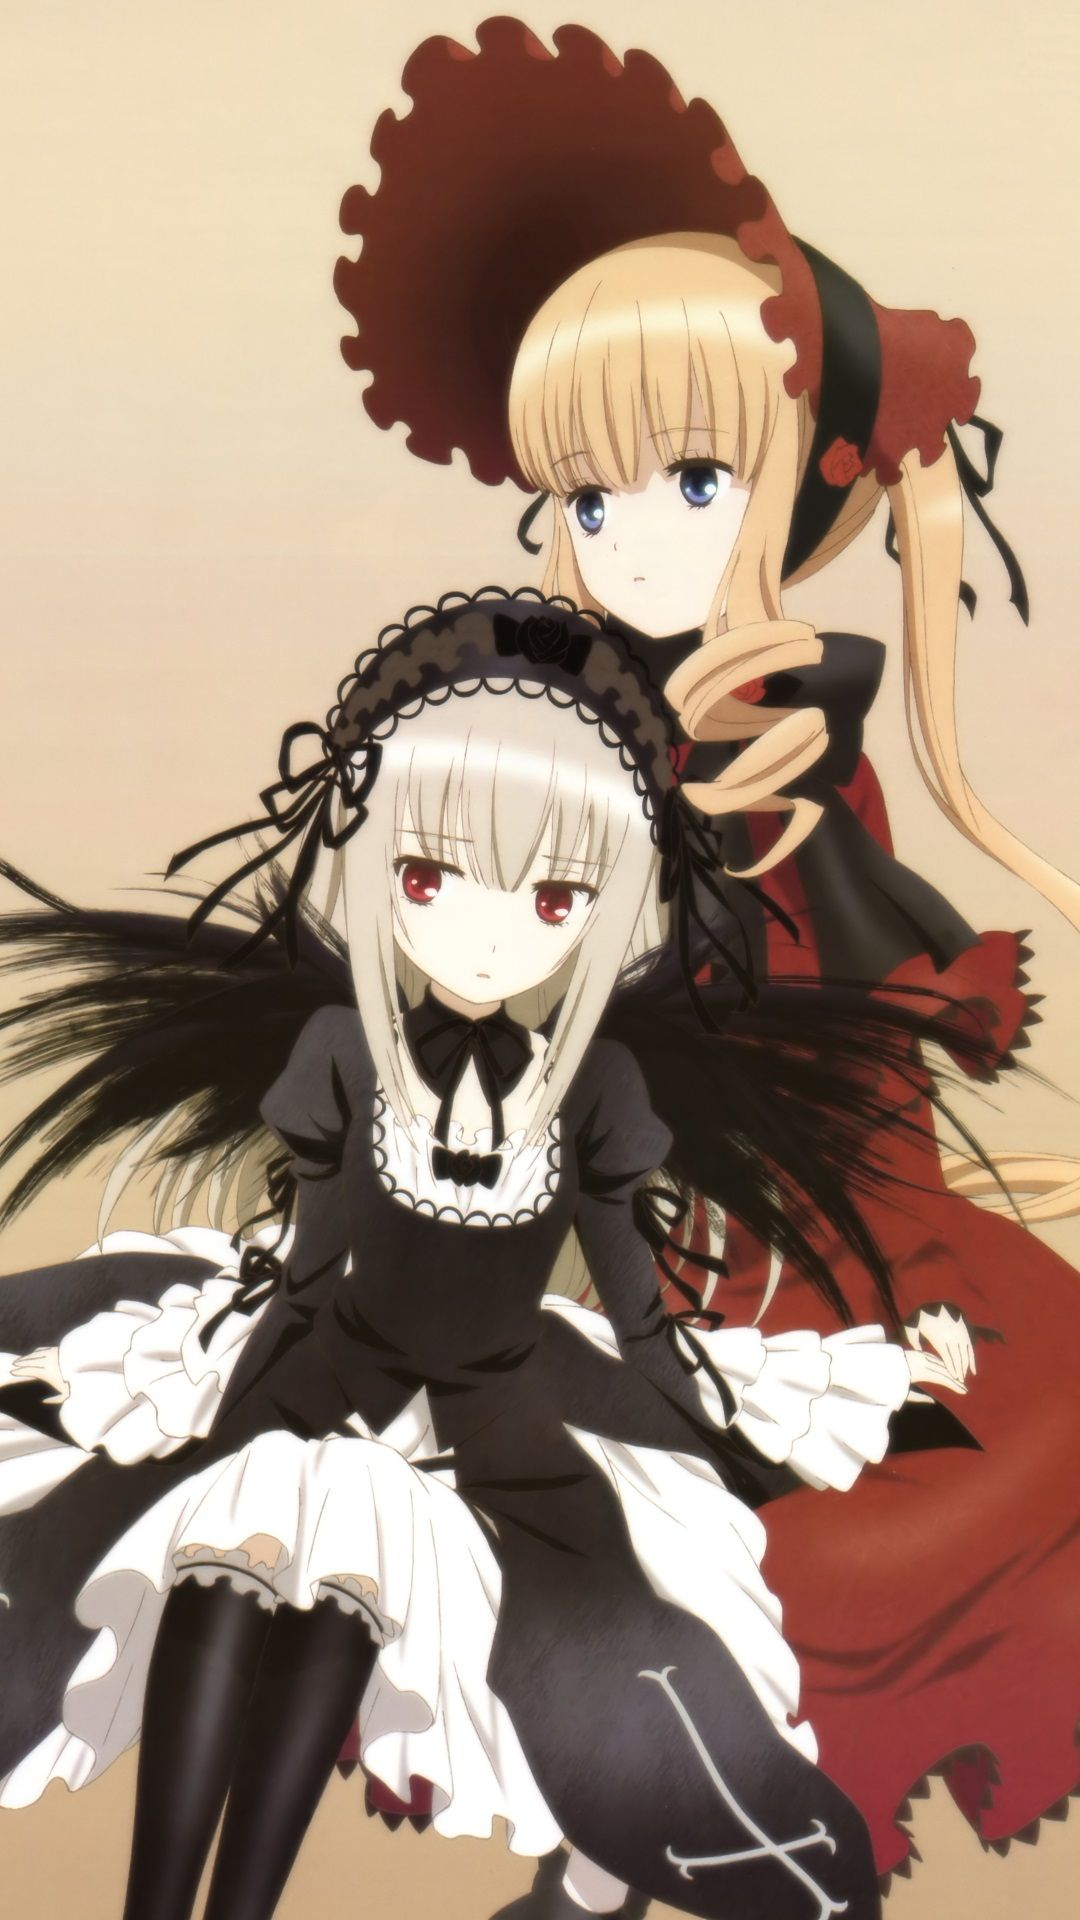 Rozen Maiden Iphone And Android Anime Wallpapers En 2019